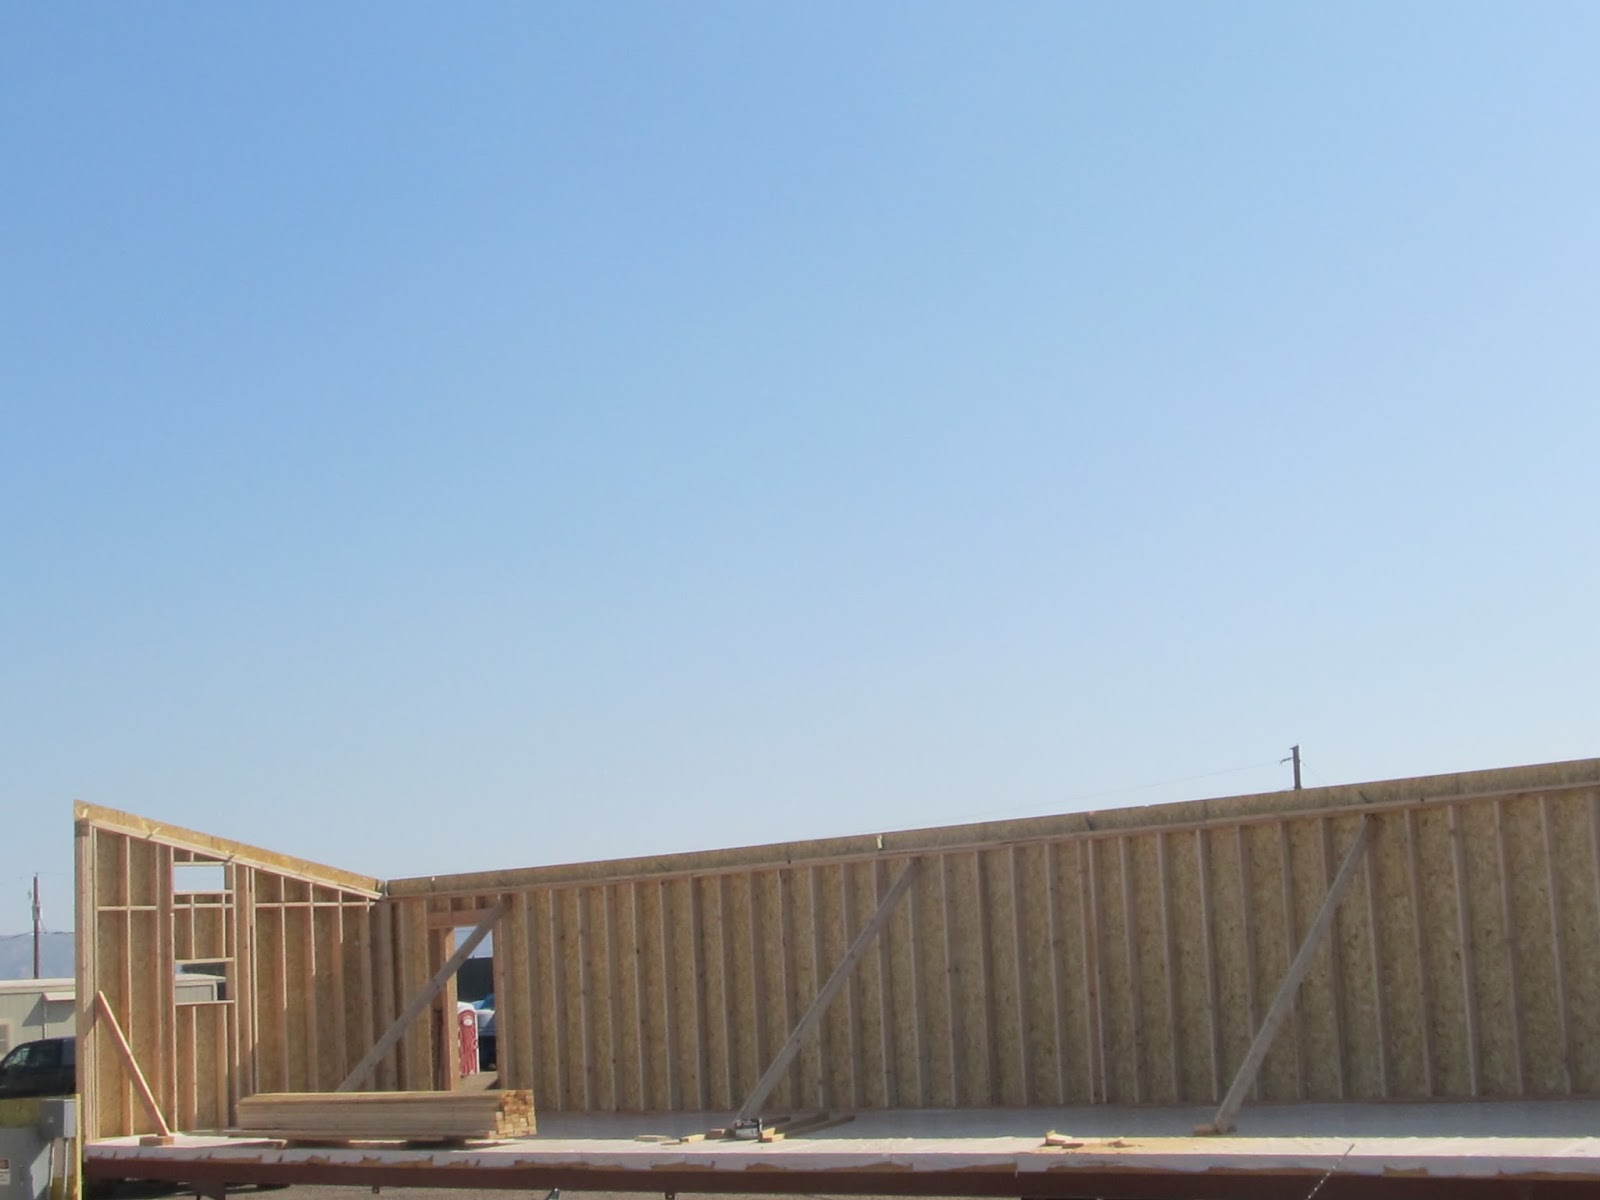 Modular Solutions Ltd The Experts On Prefabricated Buildings Should I Upgrade To 2x6 Walls Or